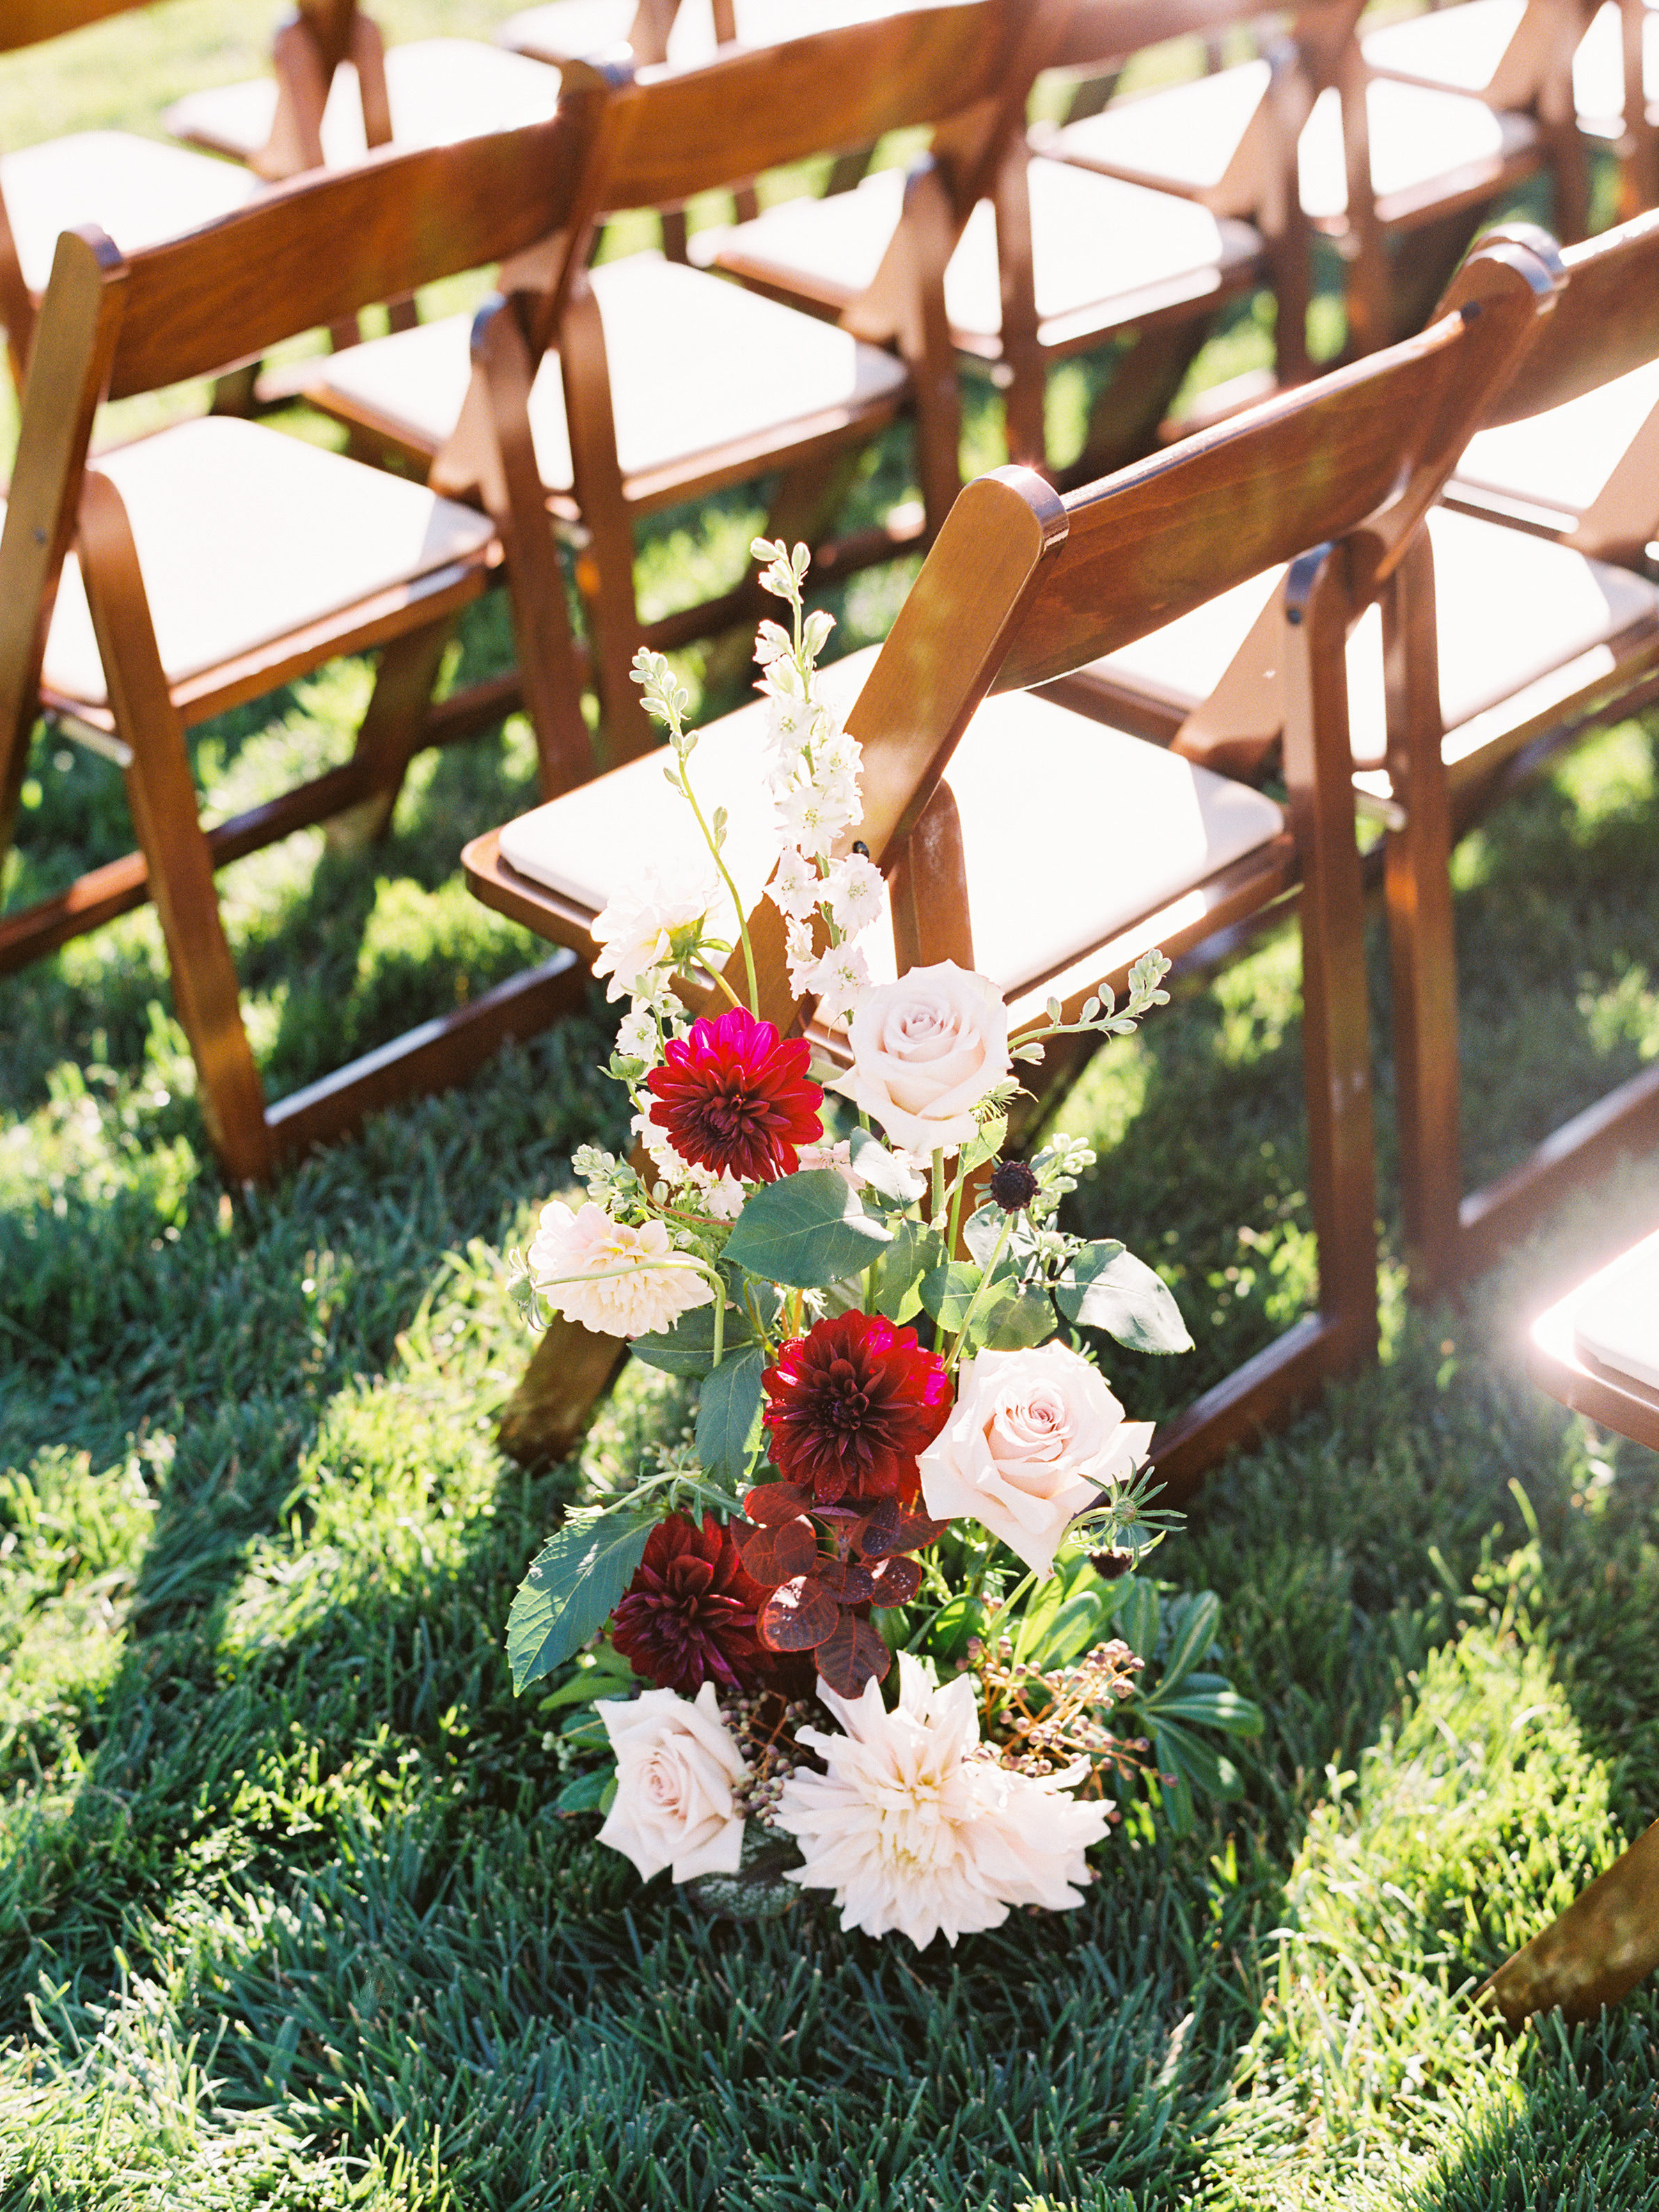 dianna amar wedding ceremony flowers on chair